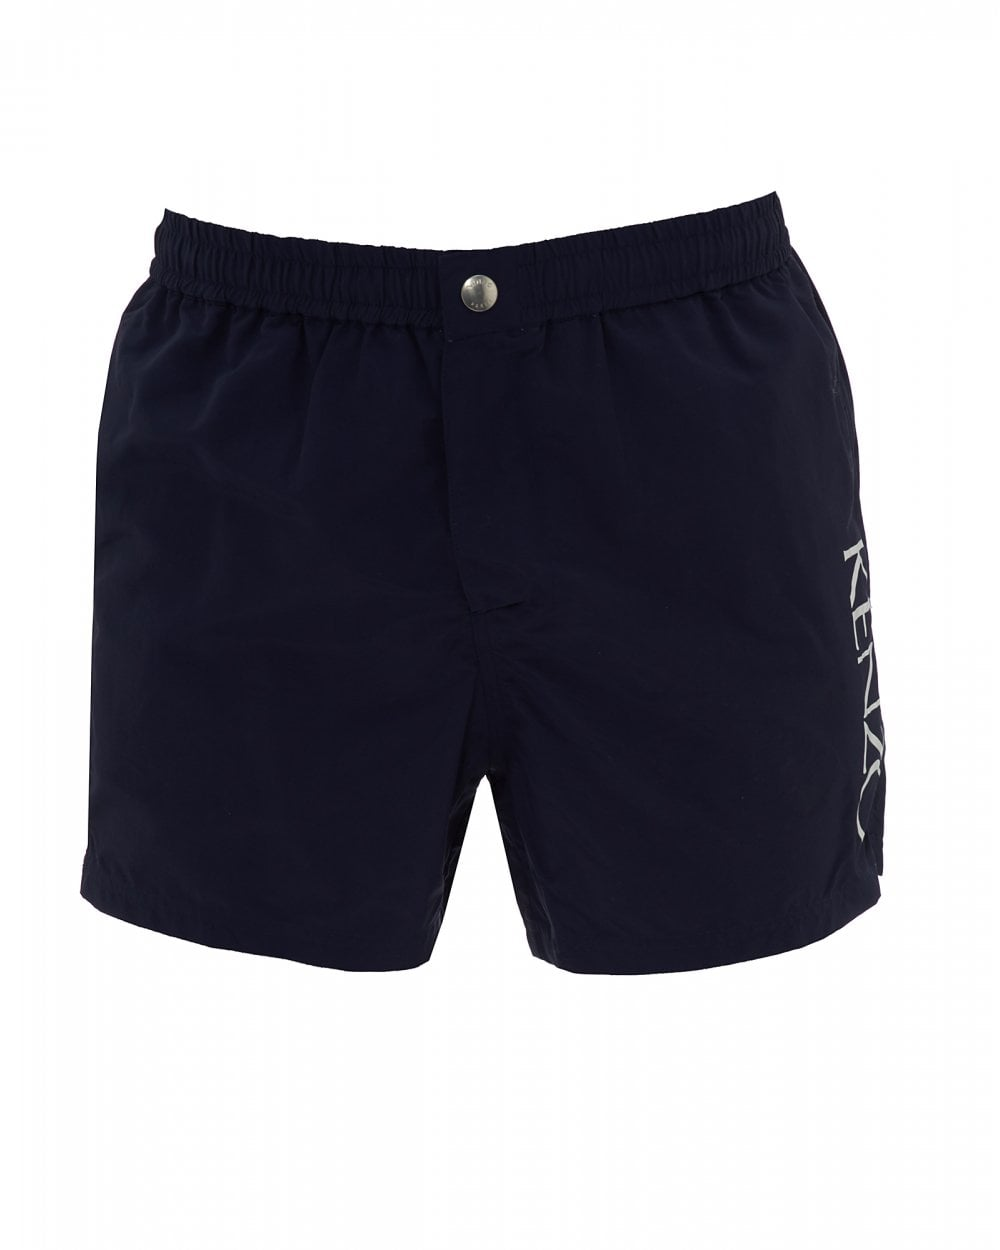 0d26acbbe7805 Kenzo Mens Midnight Blue Swim Shorts, Printed Logo Swimming Trunks